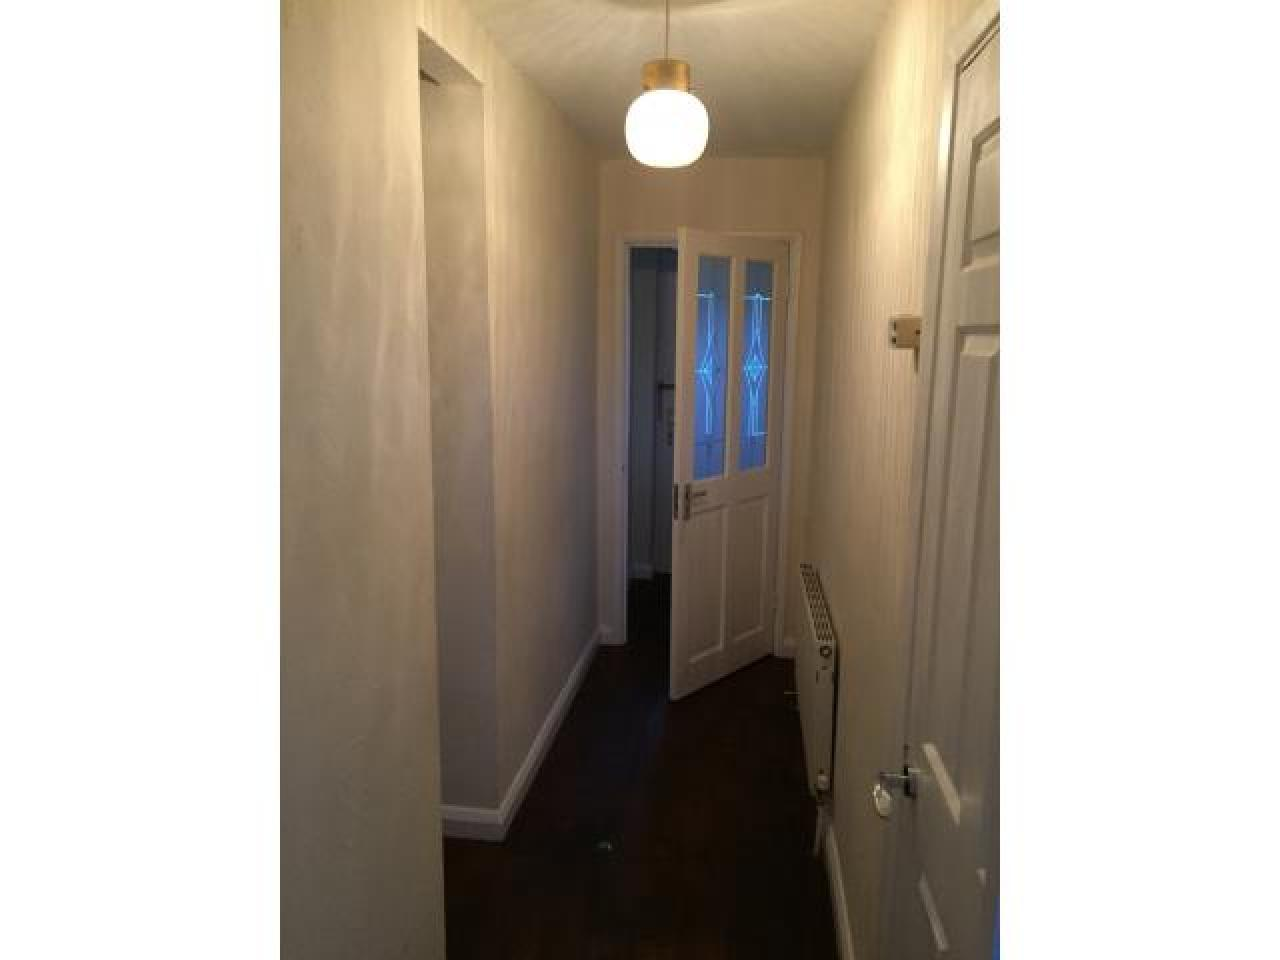 2 bedroom flat for rent in Collier Row,Romford - 7